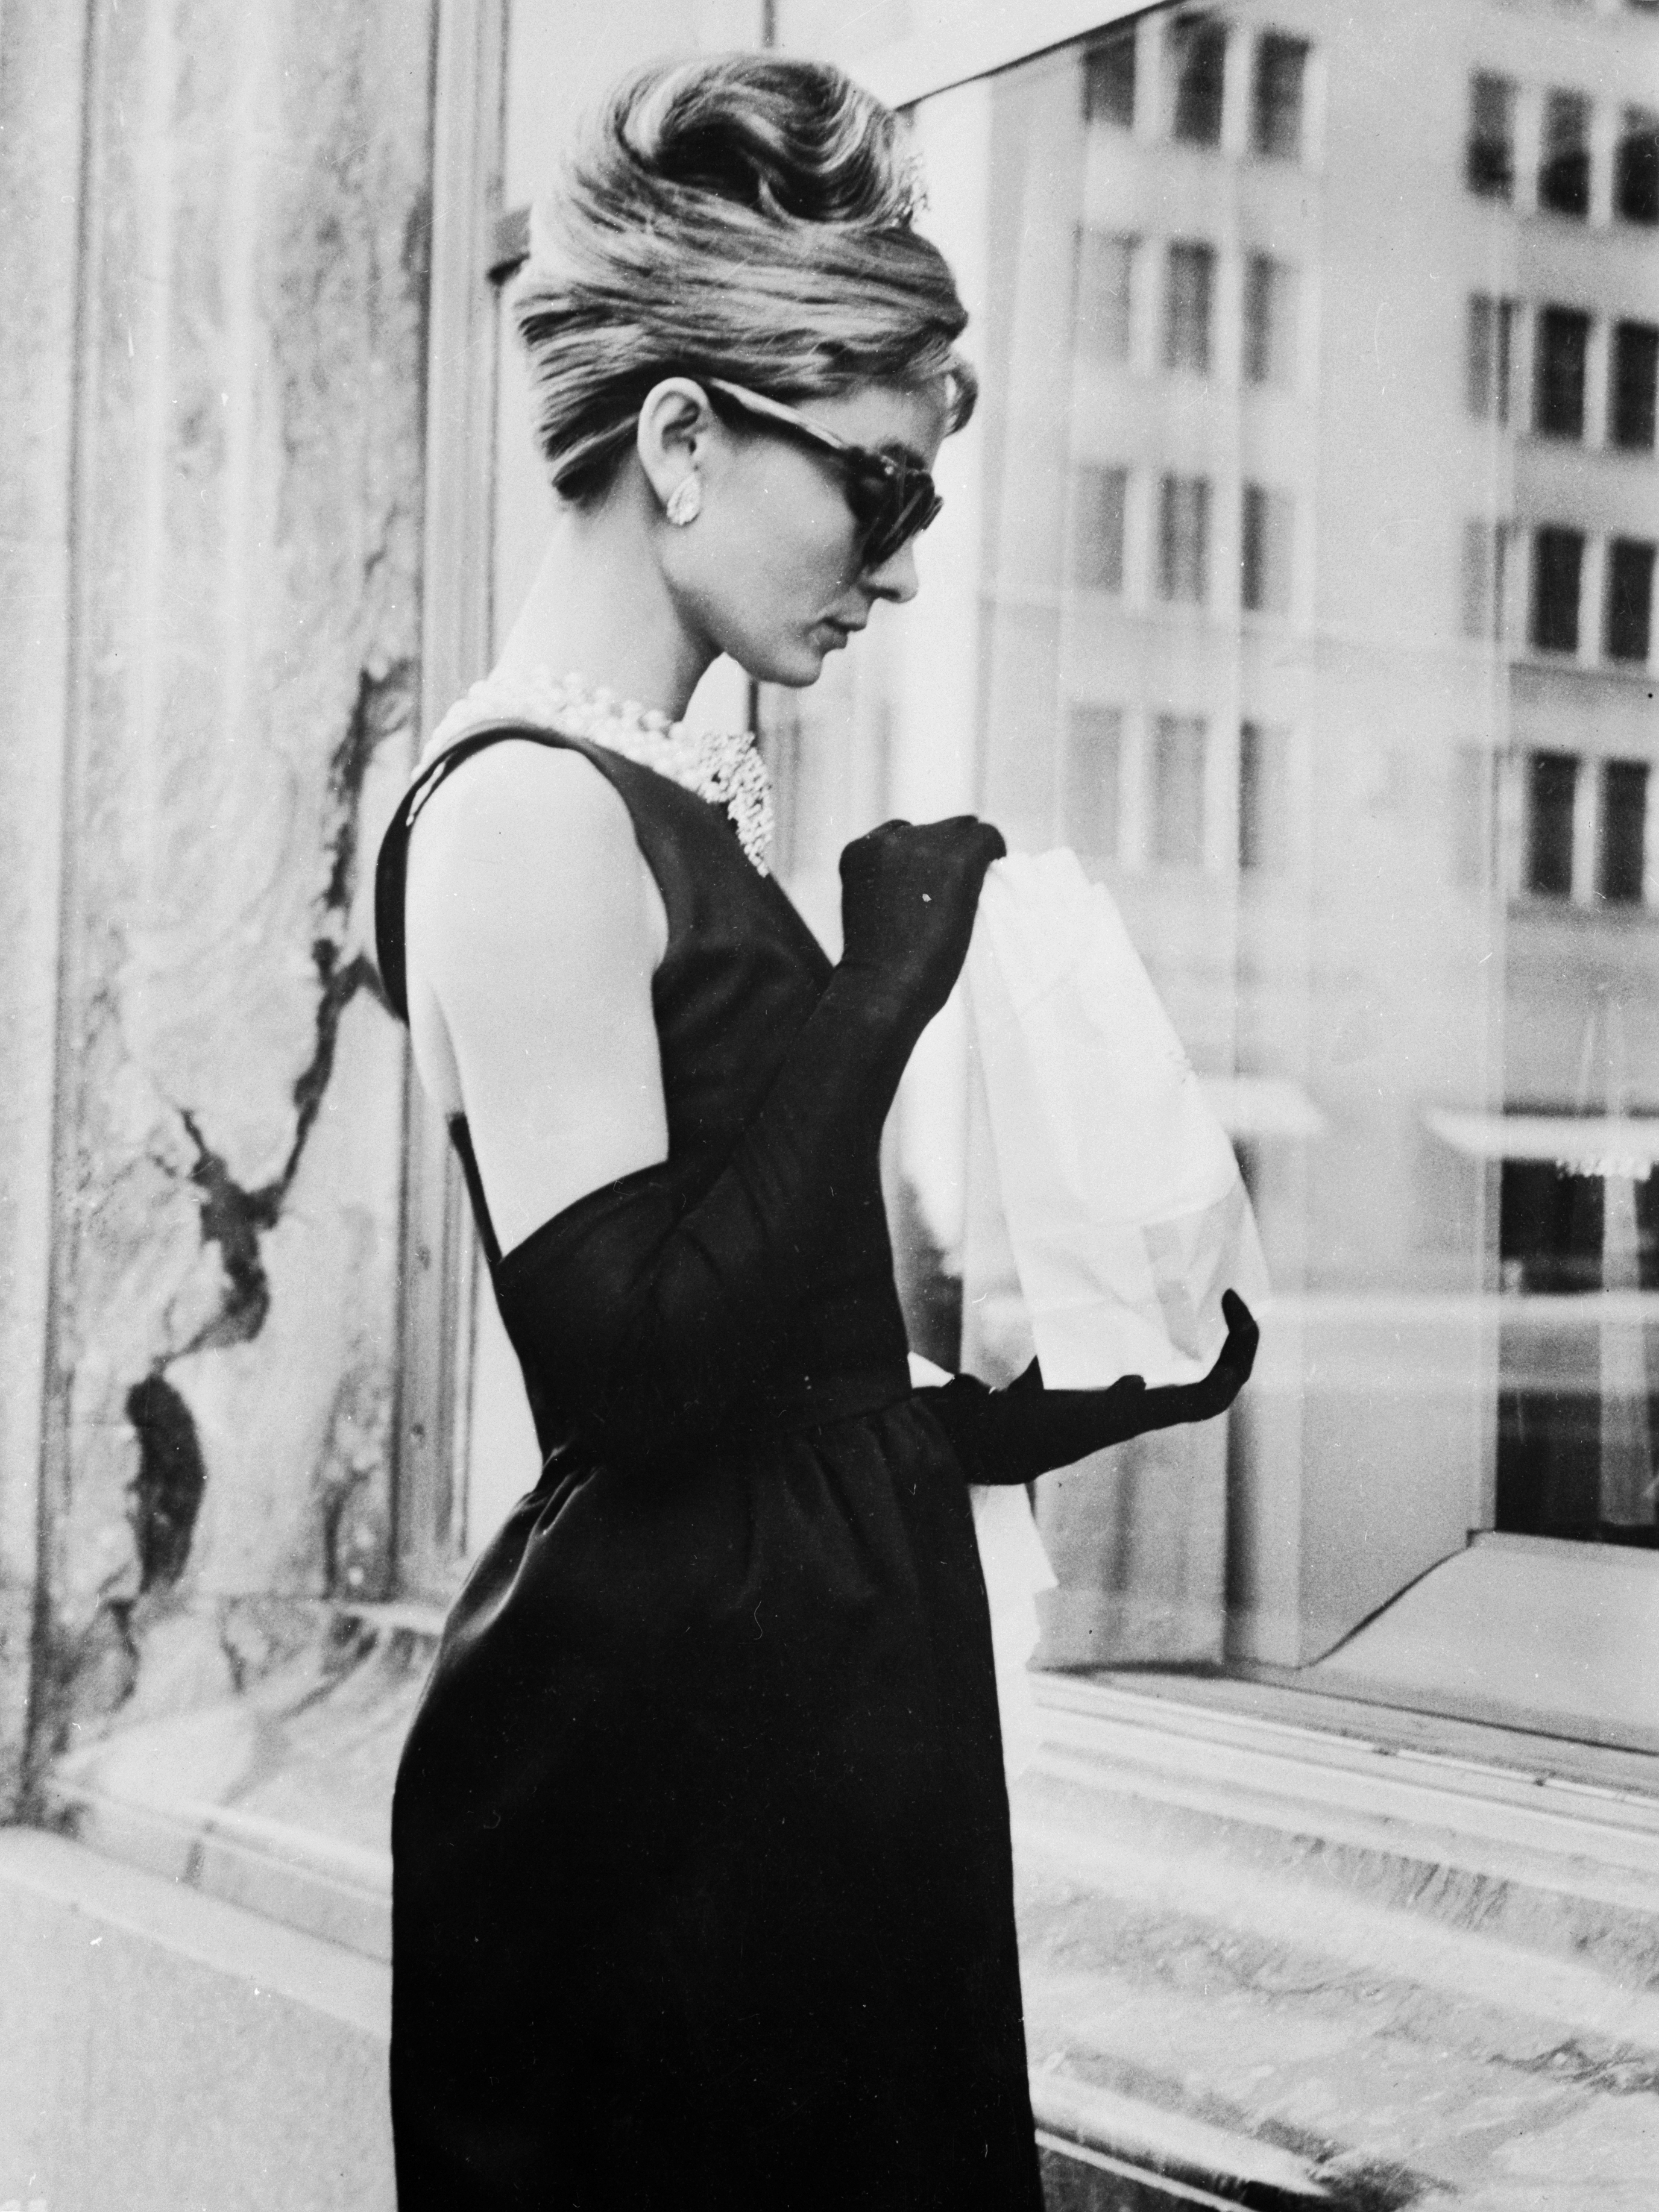 Audrey Hepburn wears a black dress by Givenchy in the opening scene of 1961's Breakfast At Tiffany's.